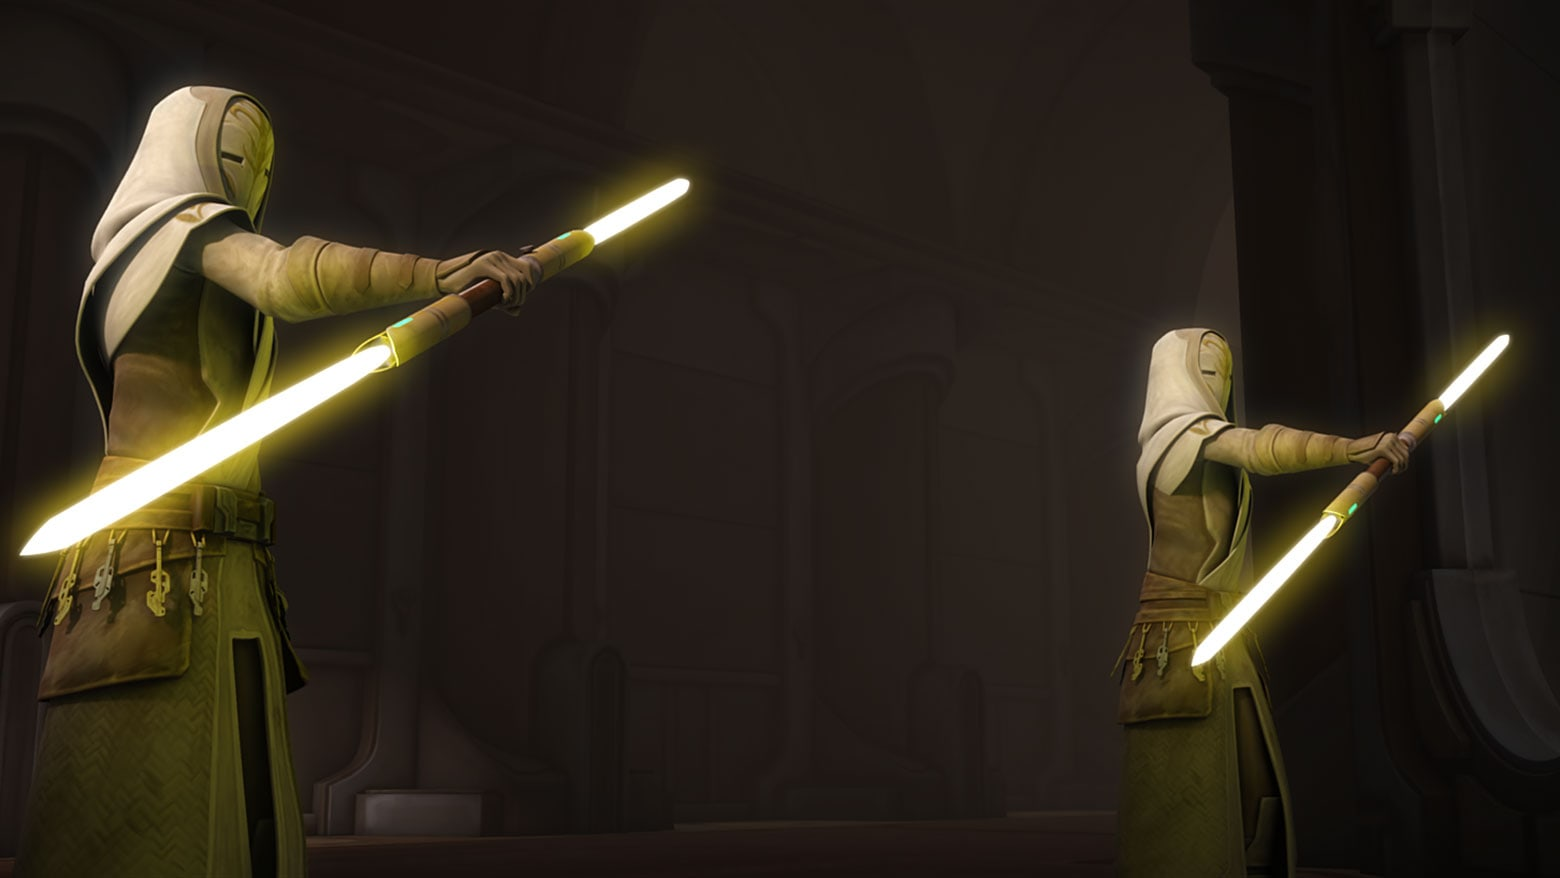 Star Wars Saber Variations by Abb-d Choudhury — Lightsaber Pike